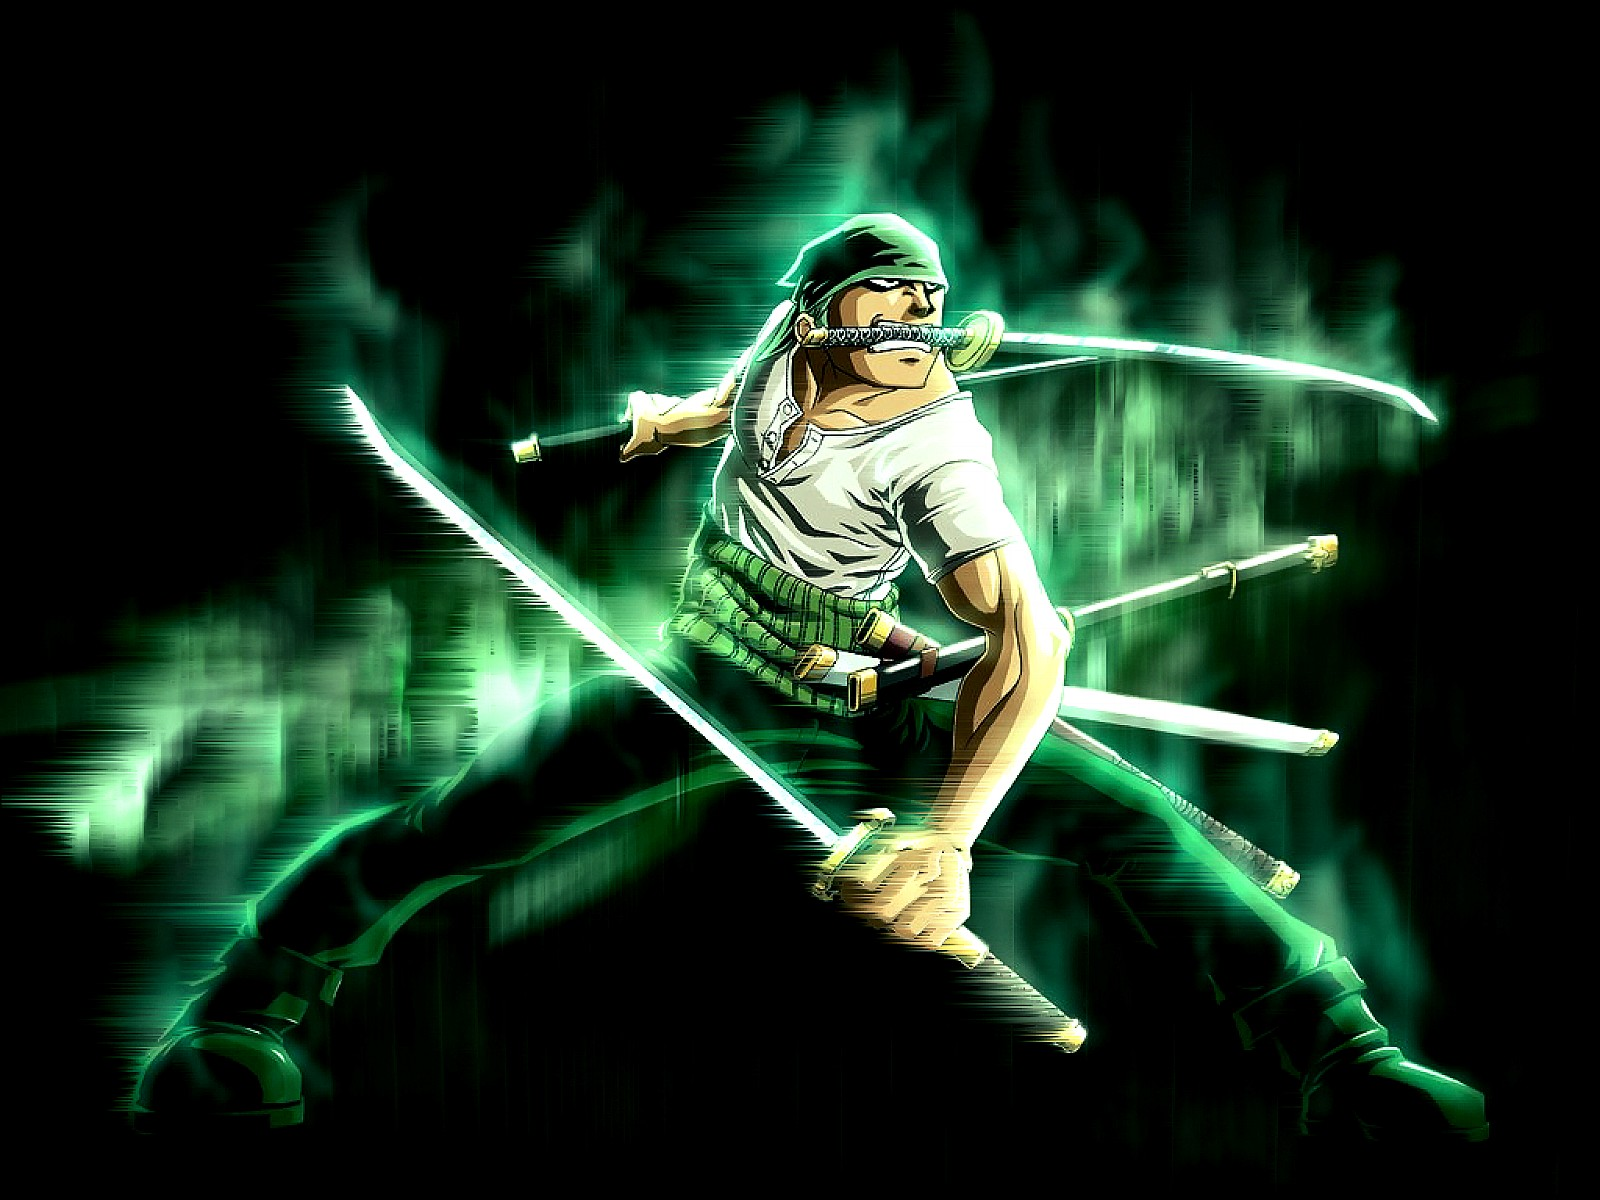 Zoro One Piece Wallpaper - WallpaperSafari